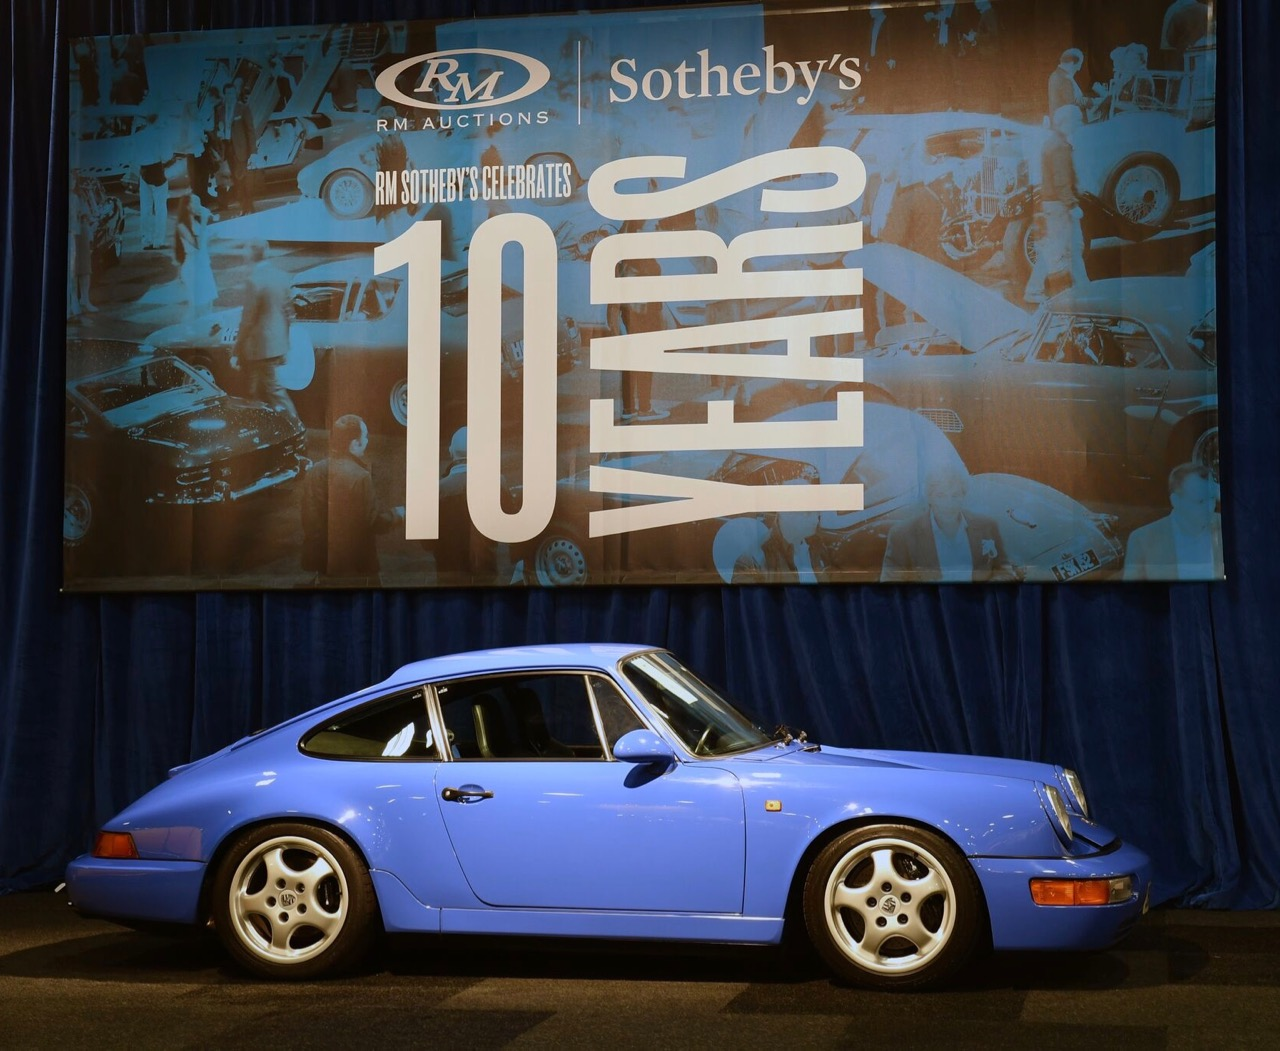 Low-mileage Porsches from a single collection sell very well